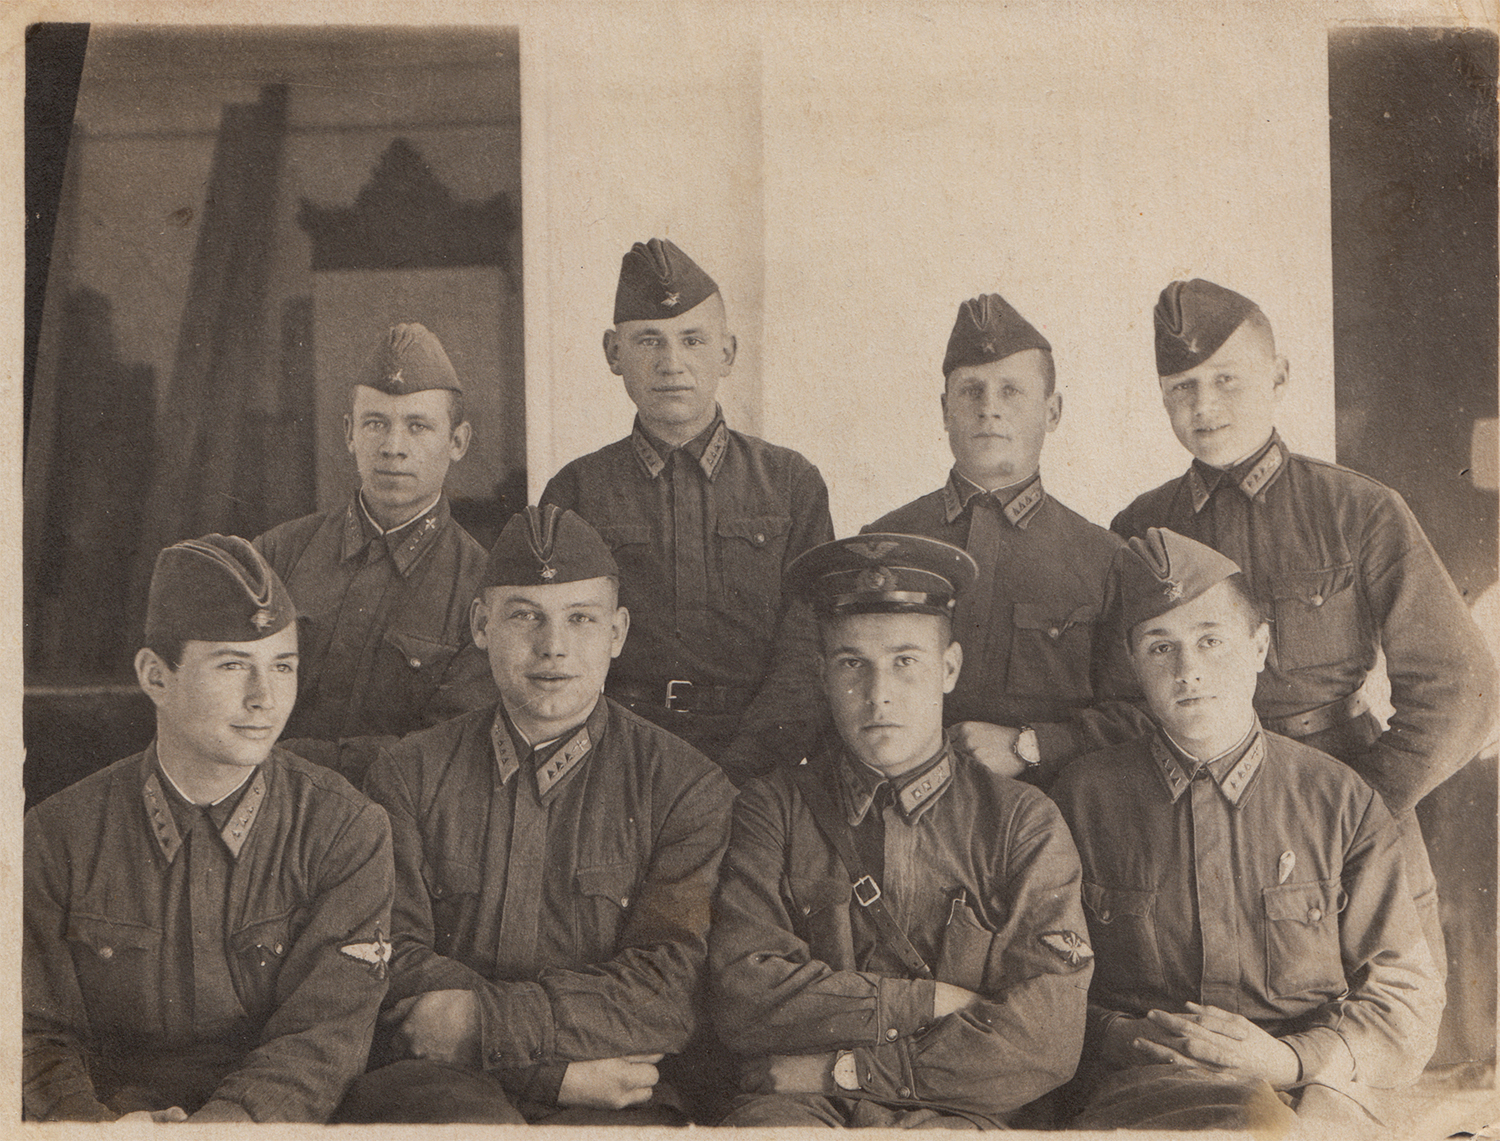 Gregory Fein (top row, first on the right). Odesa Oblast, Ukraine, August 1941